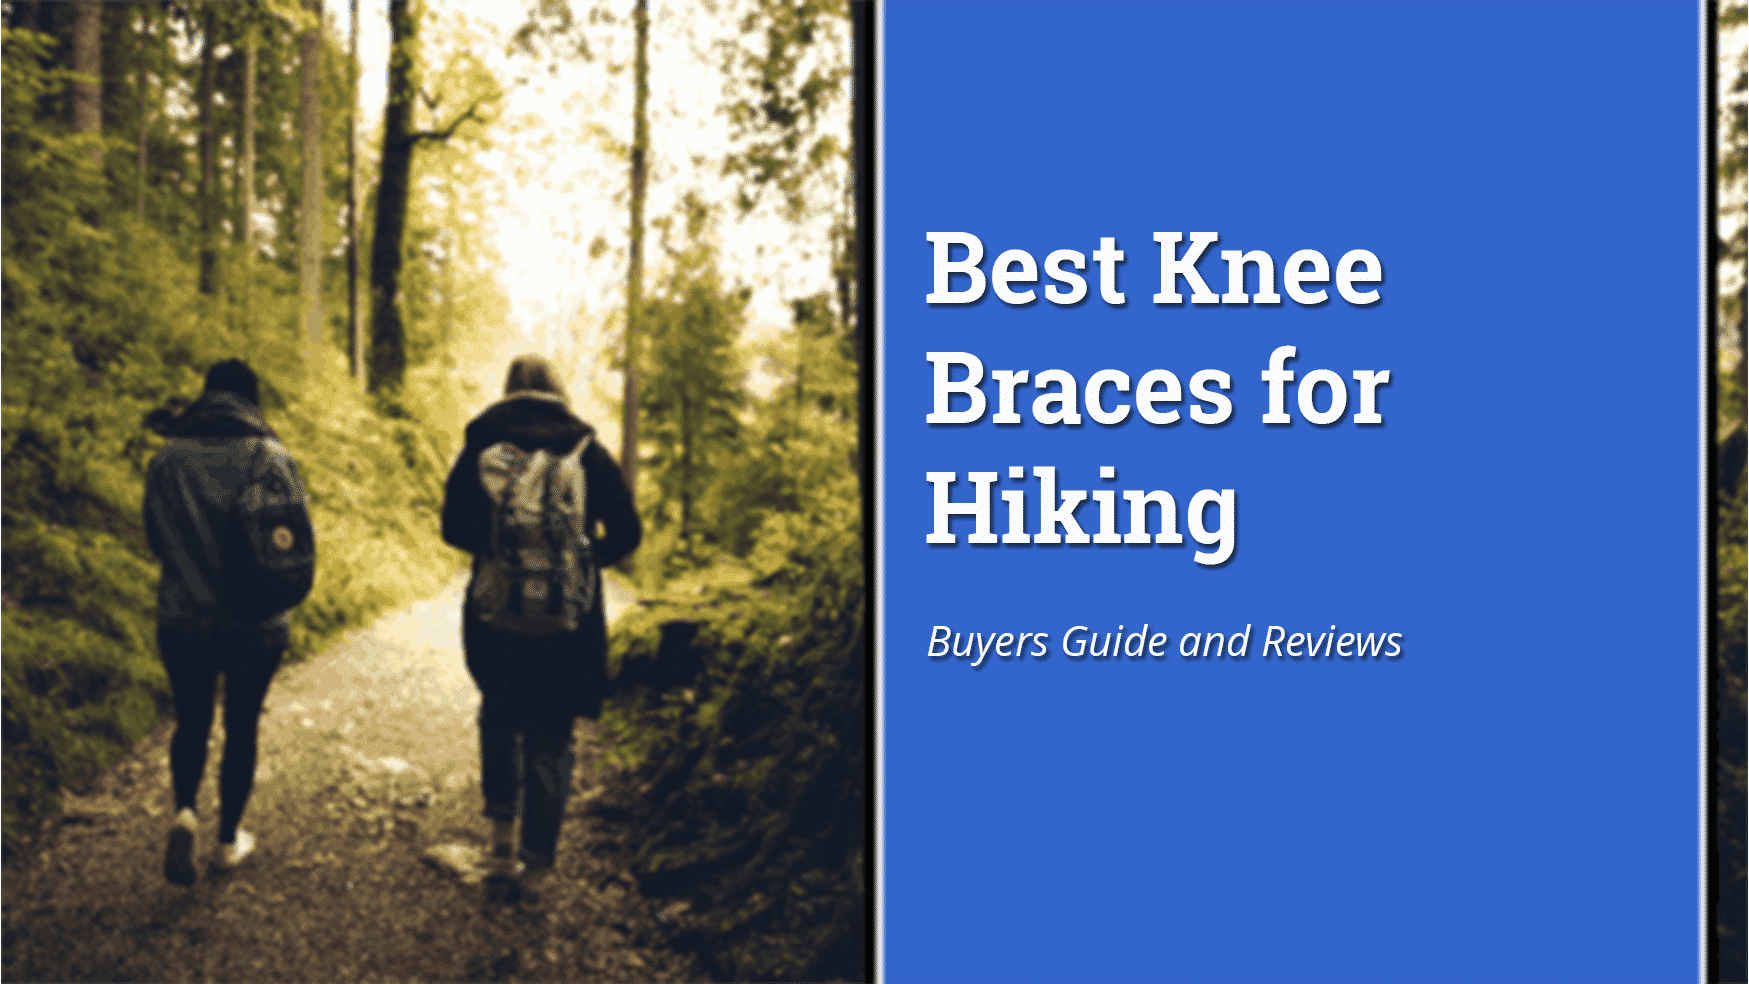 Best-knee-braces-for-hiking